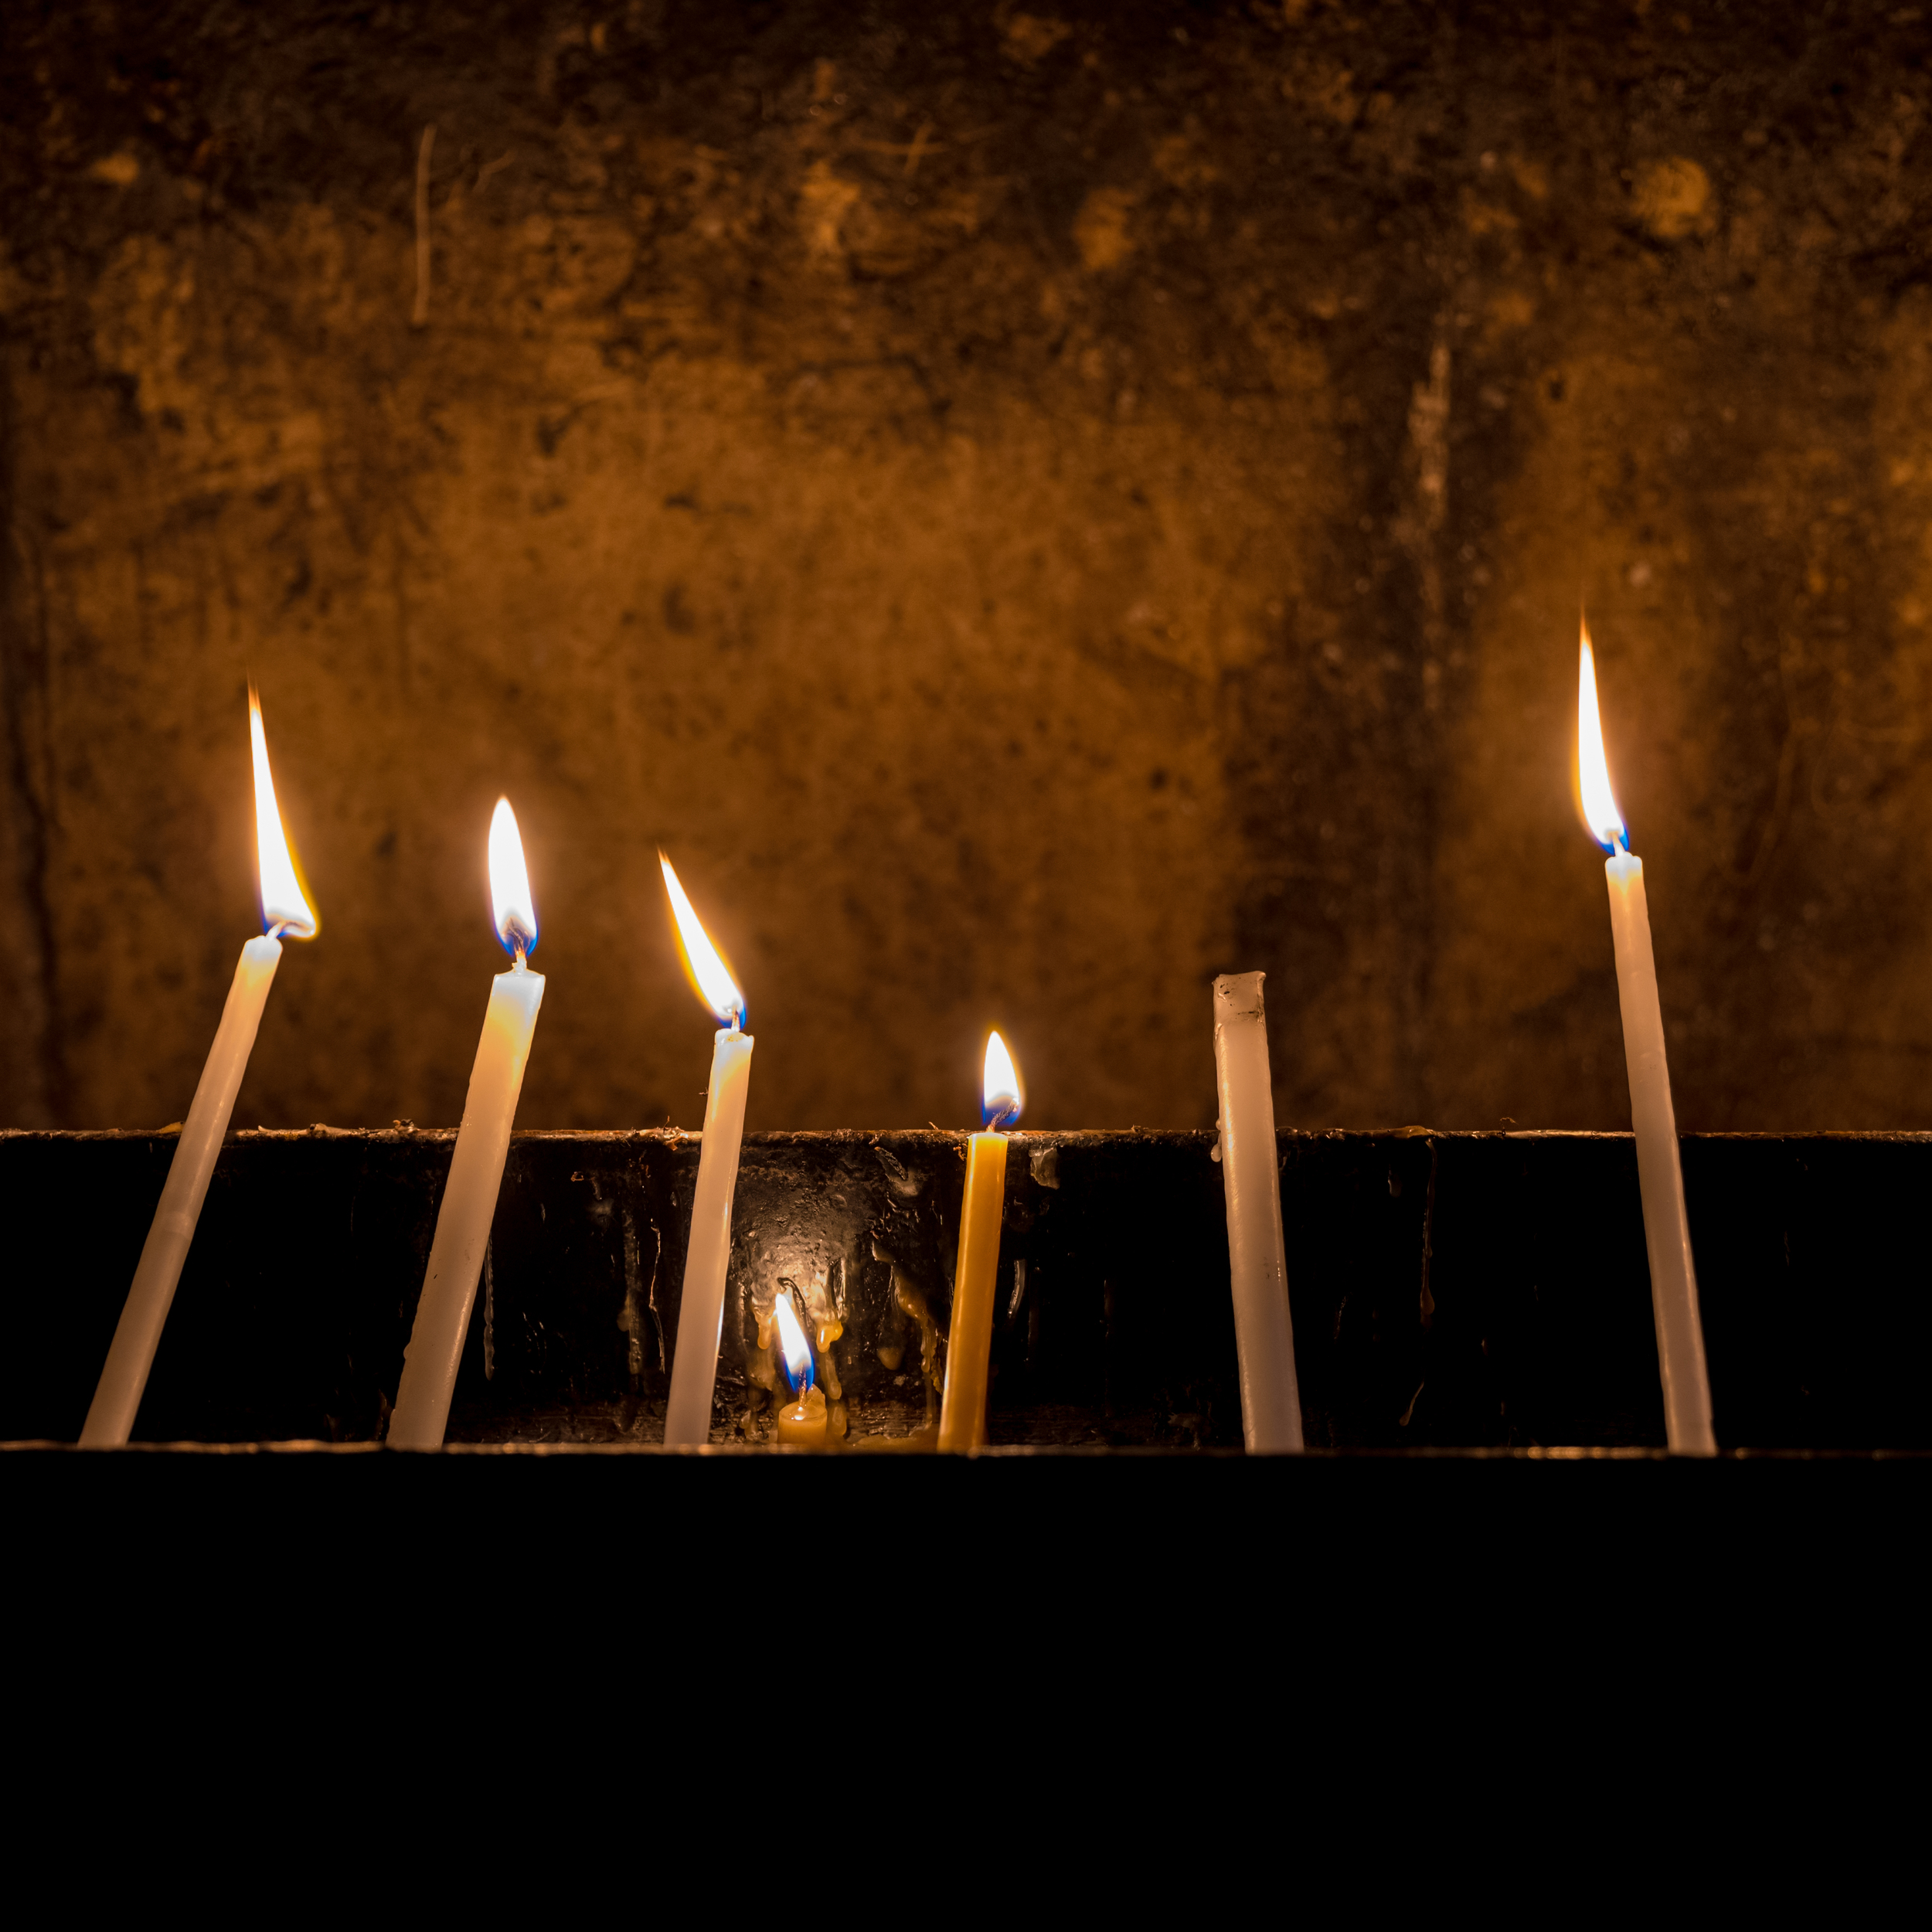 The Leica SL has wonderful low-light performance. These candles were at an alter outside a tomb where Christians believe Jesus is buried in Jerusalem, Israel. Shot with the Leica 24-90mm Vario Elmarit lens.